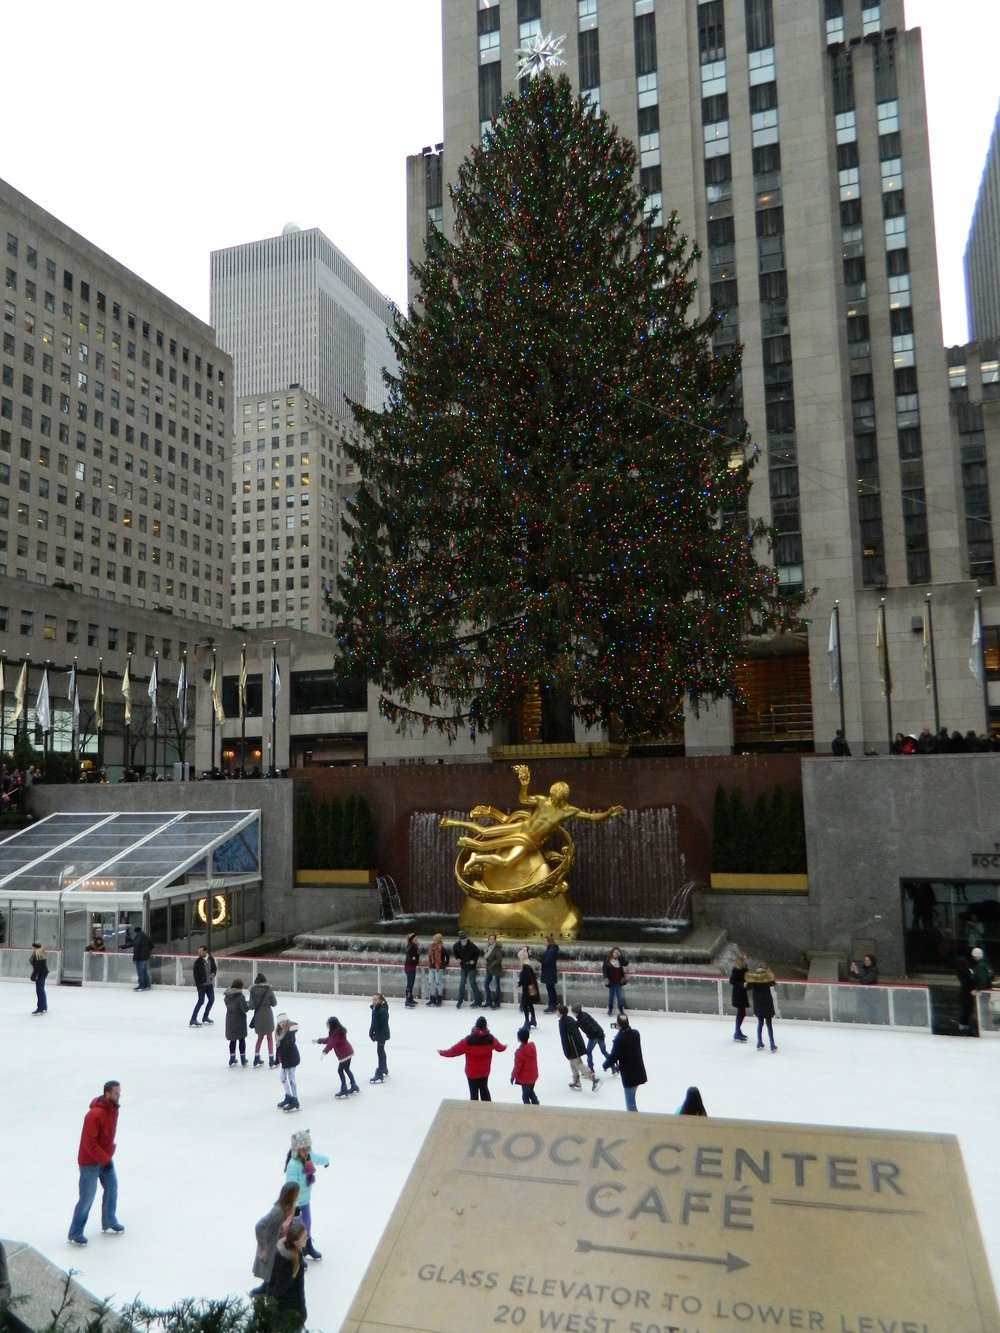 The gorgeous tree in Rockefeller Plaza